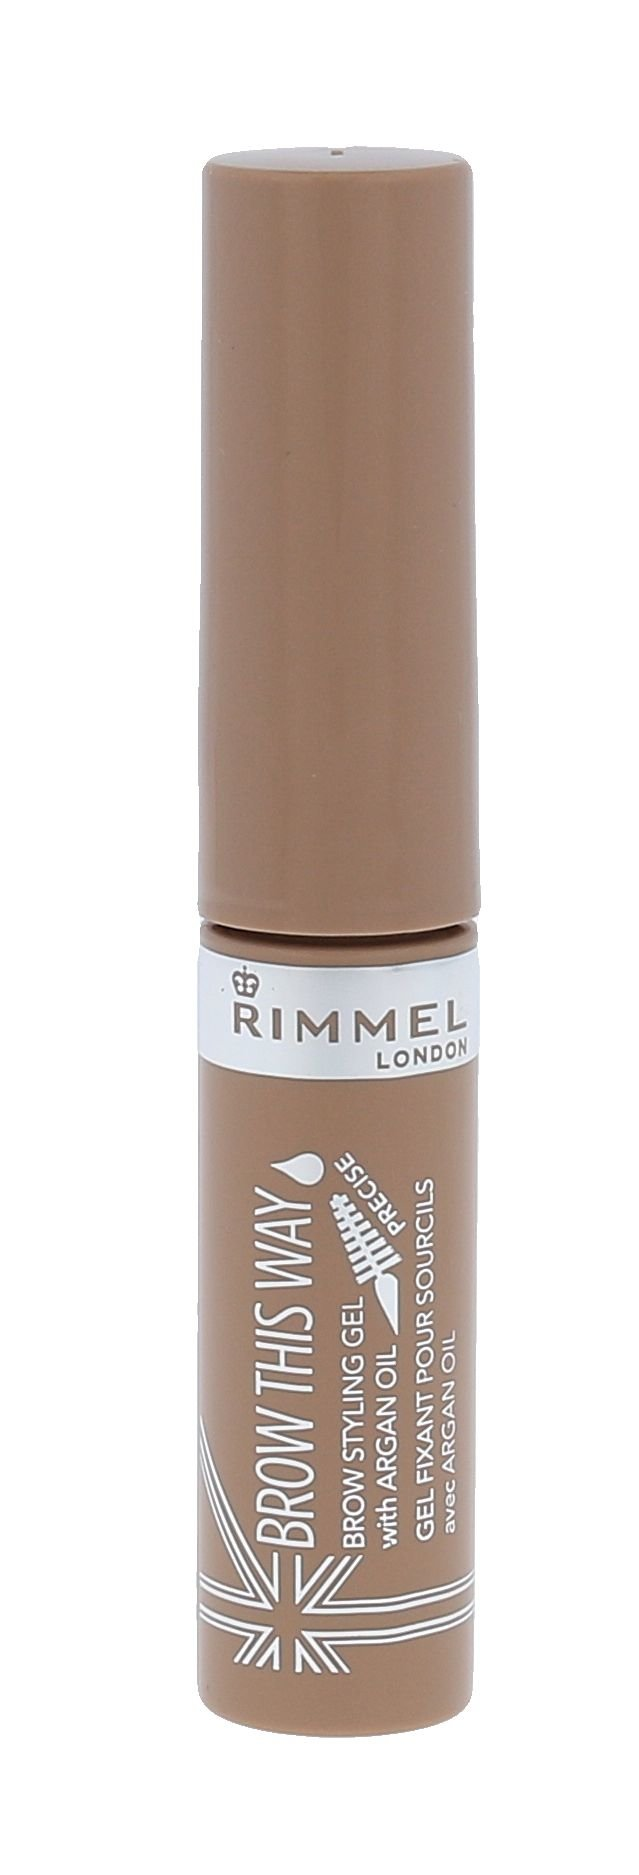 Rimmel London Brow This Way Cosmetic 5ml 001 Blonde